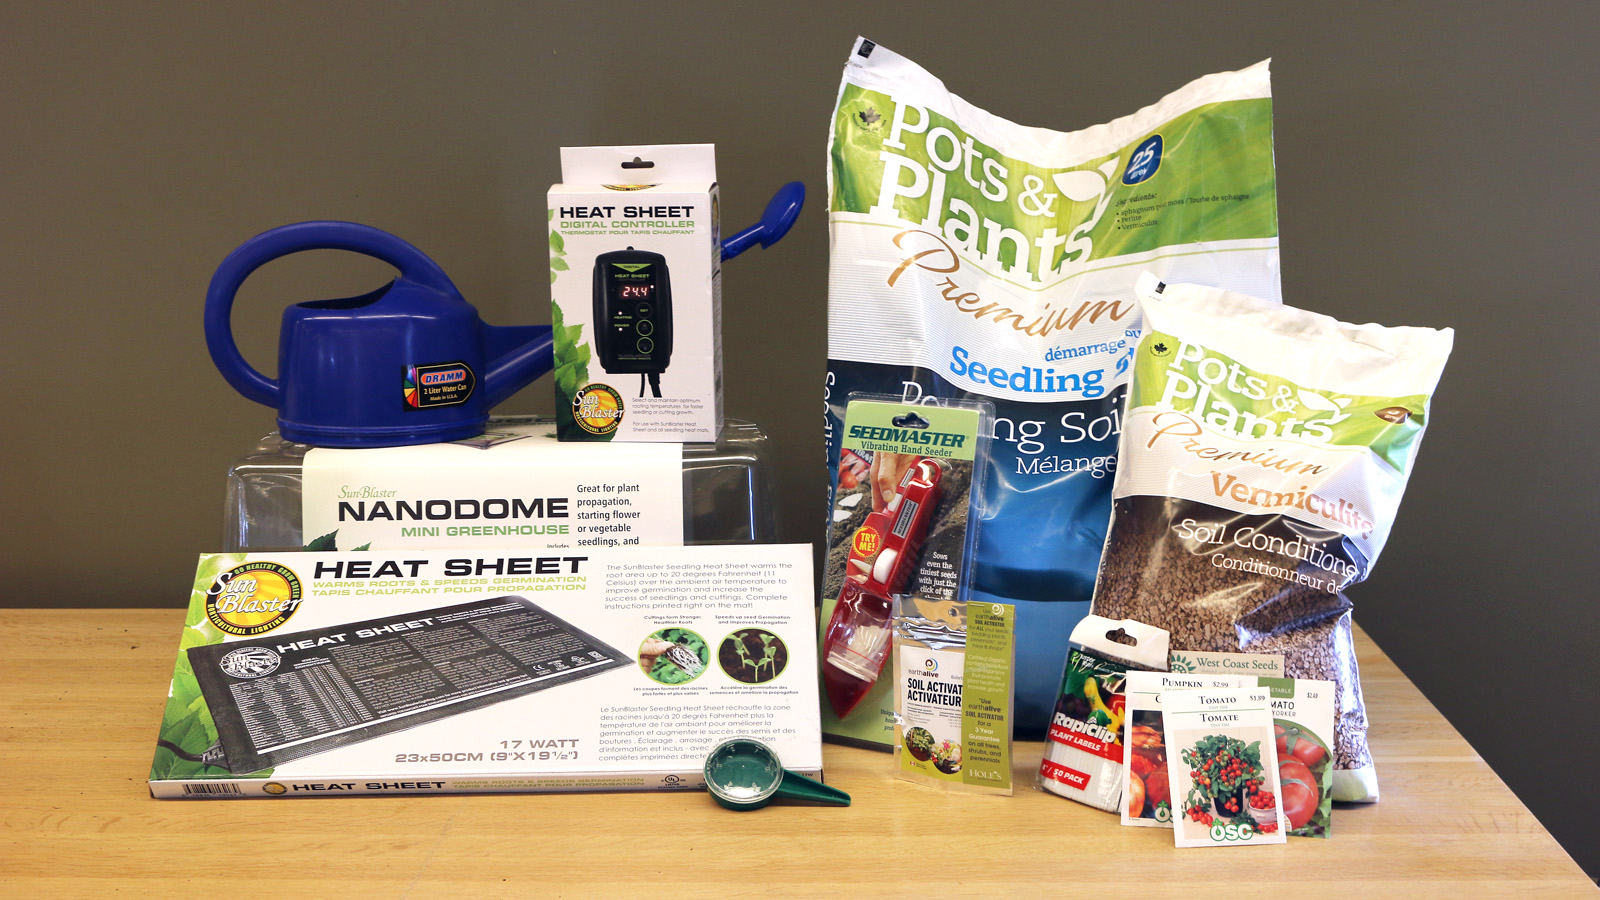 All the tools you need to get your seeds started indoors.